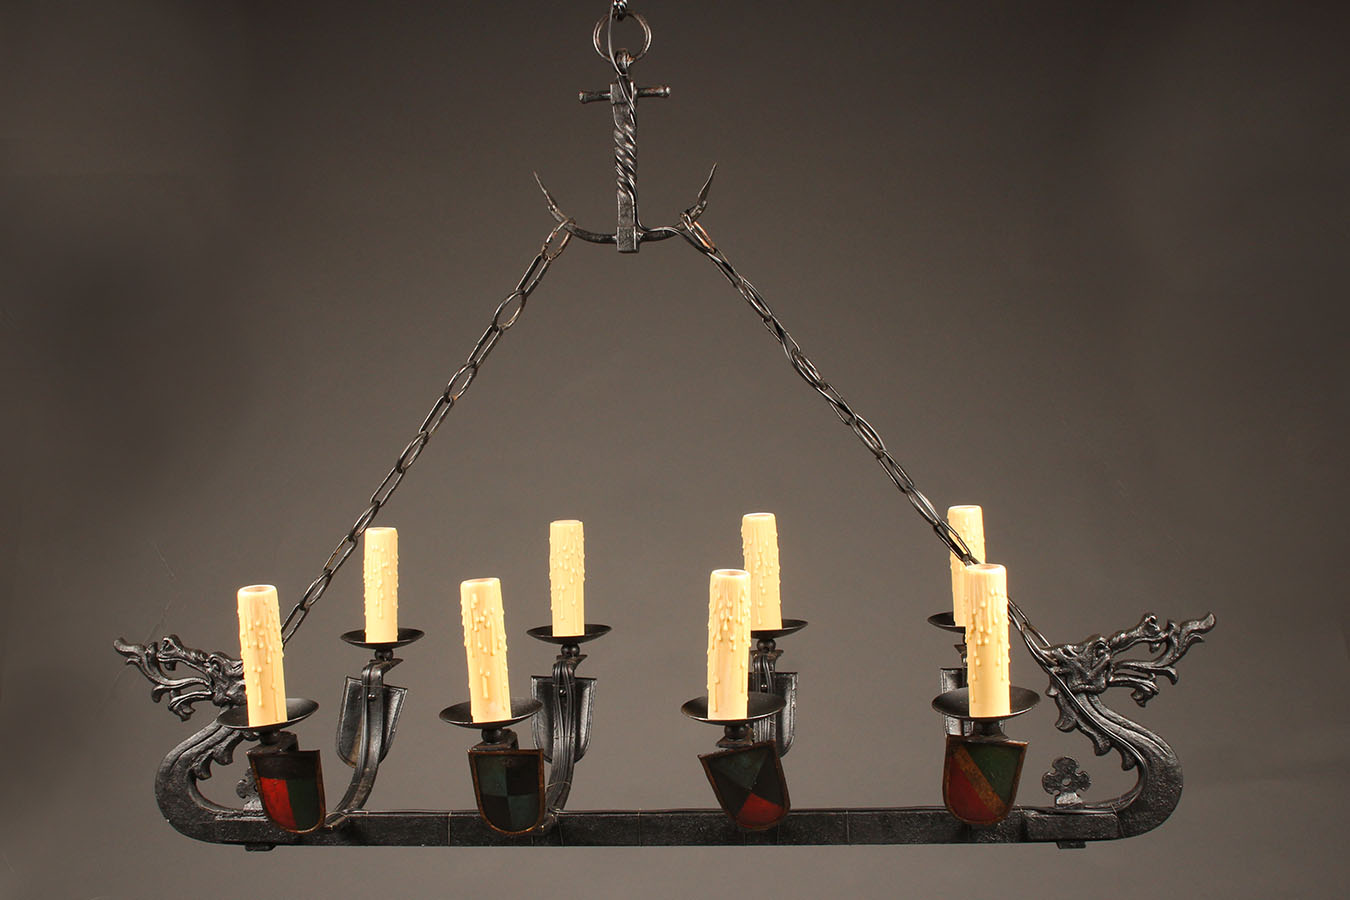 8 arm french iron chandelier in the shape of a viking ship